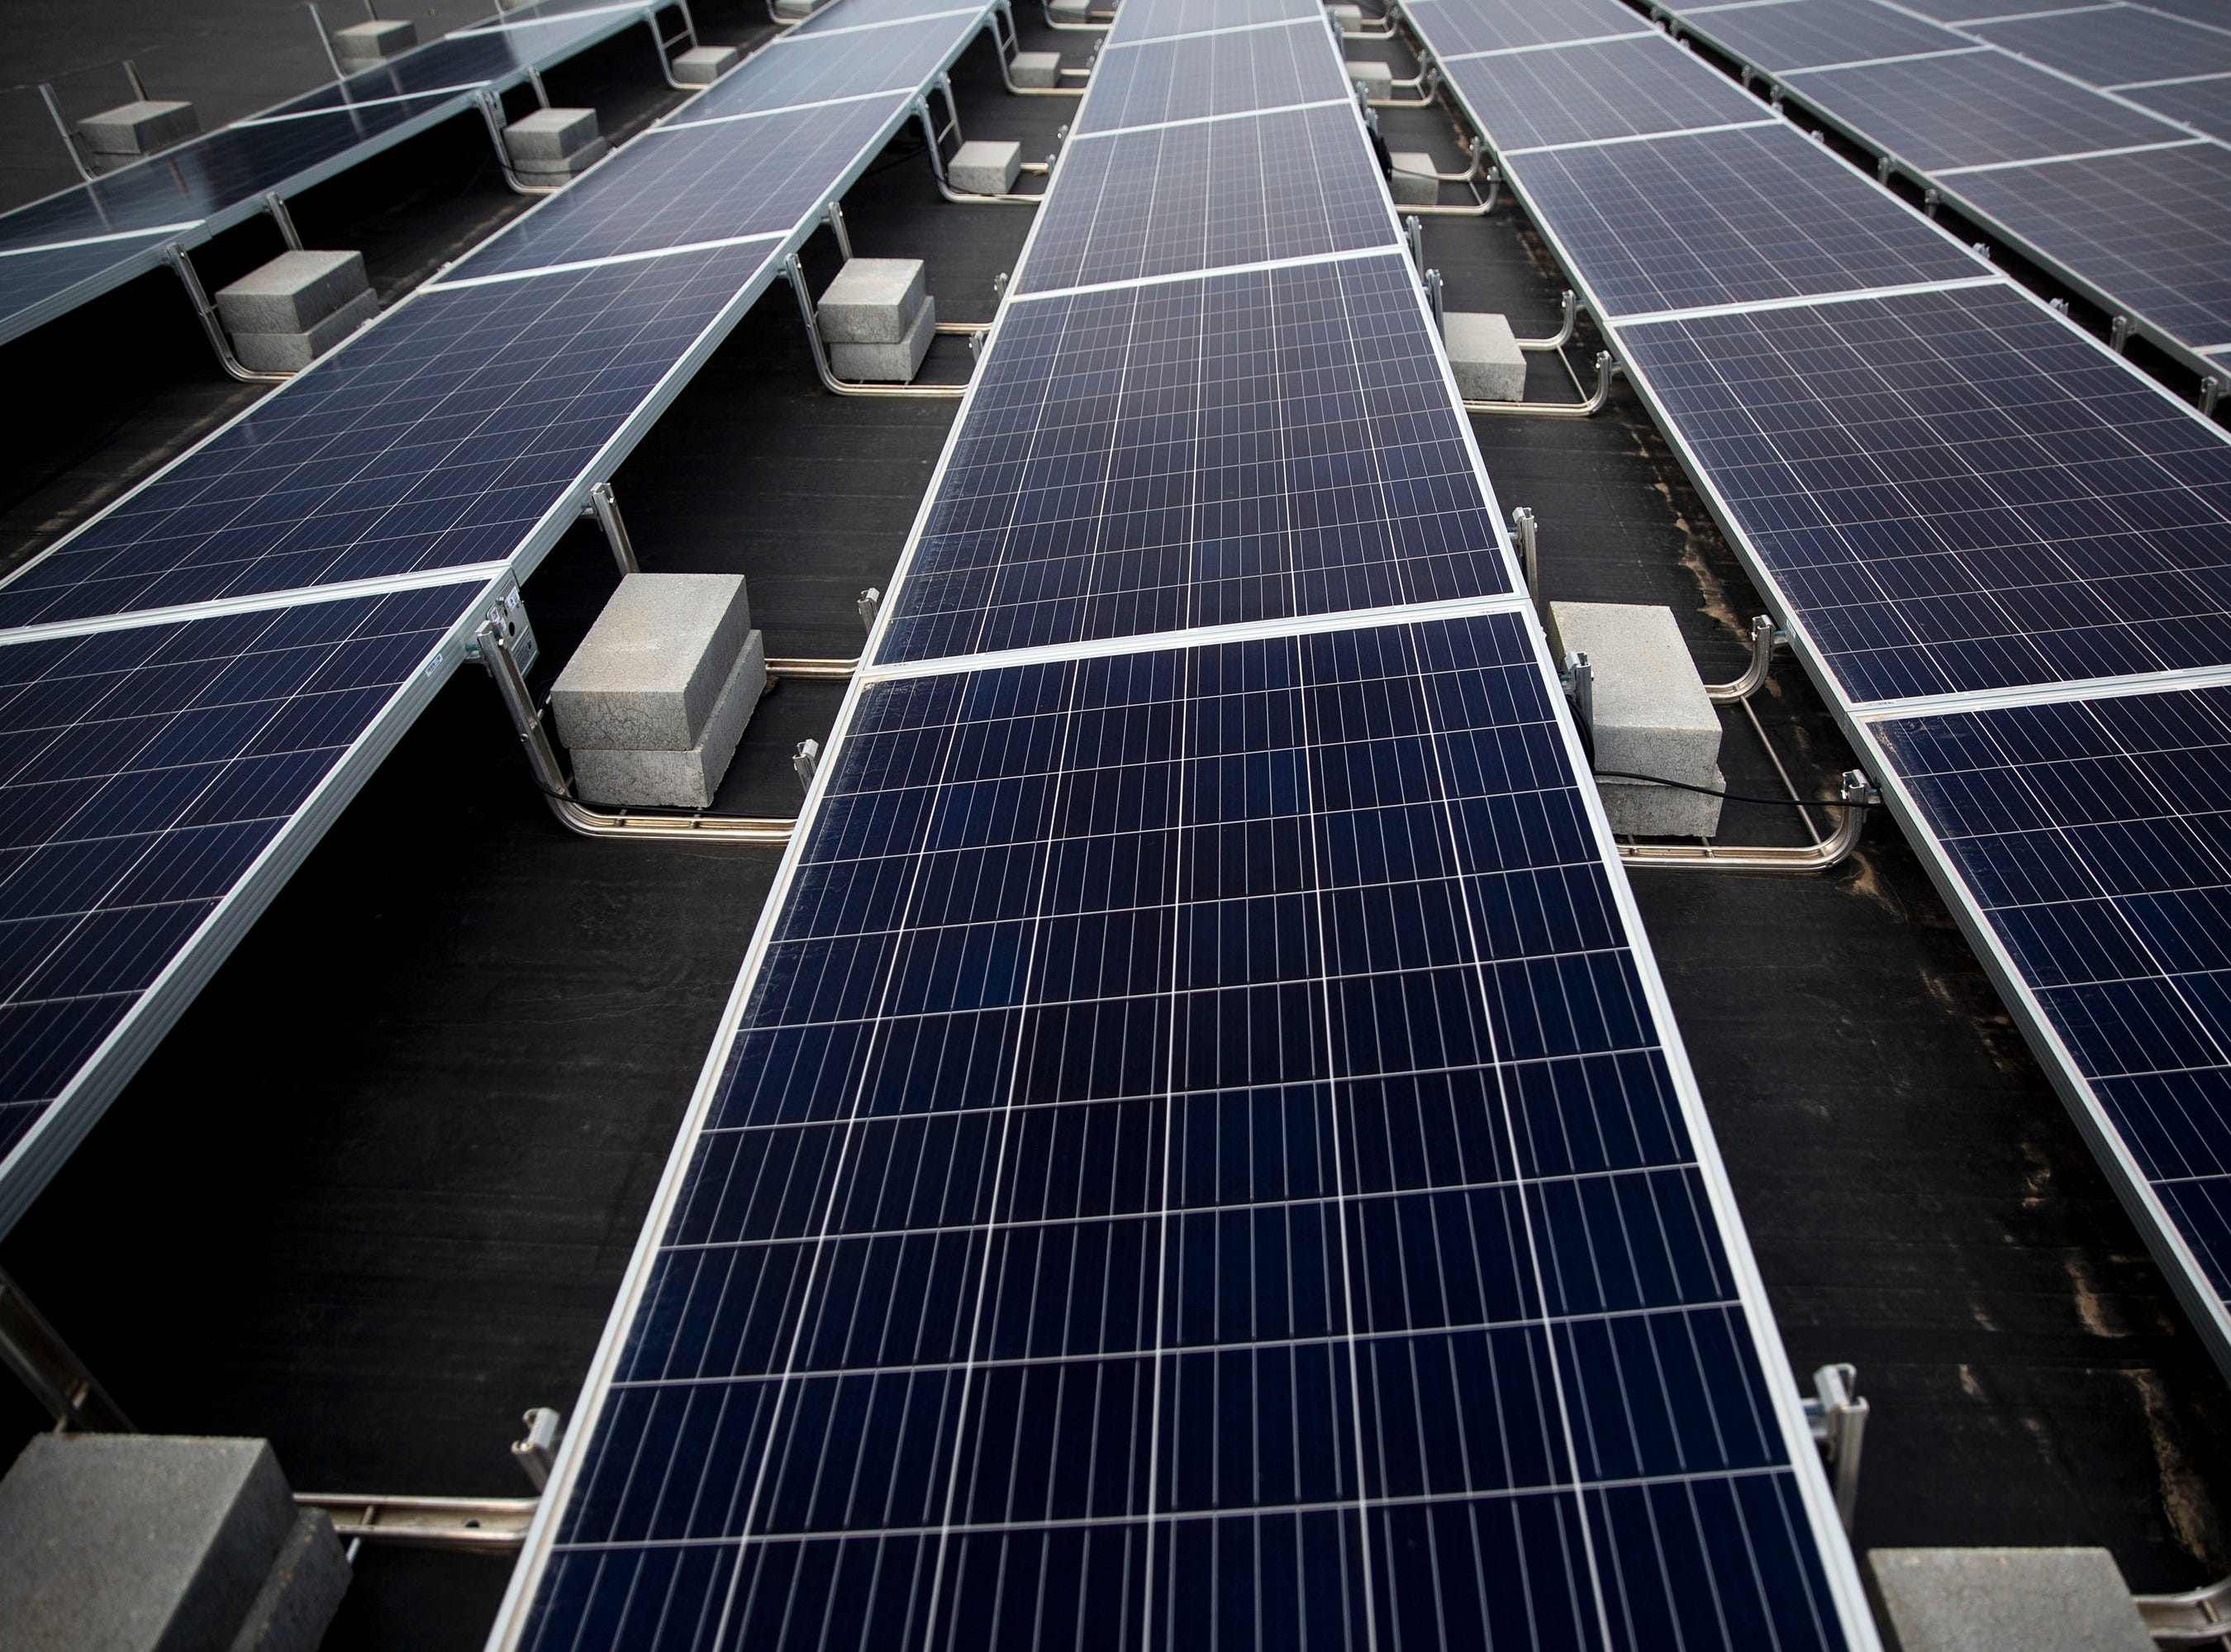 A set of solar panels absorbs sunlight on the roof of 1 Source Solar's building on Tuesday, April 9, 2019, in Ankeny. The solar array provides enough energy to eliminate the cost of electricity for all three of the businesses in the building.